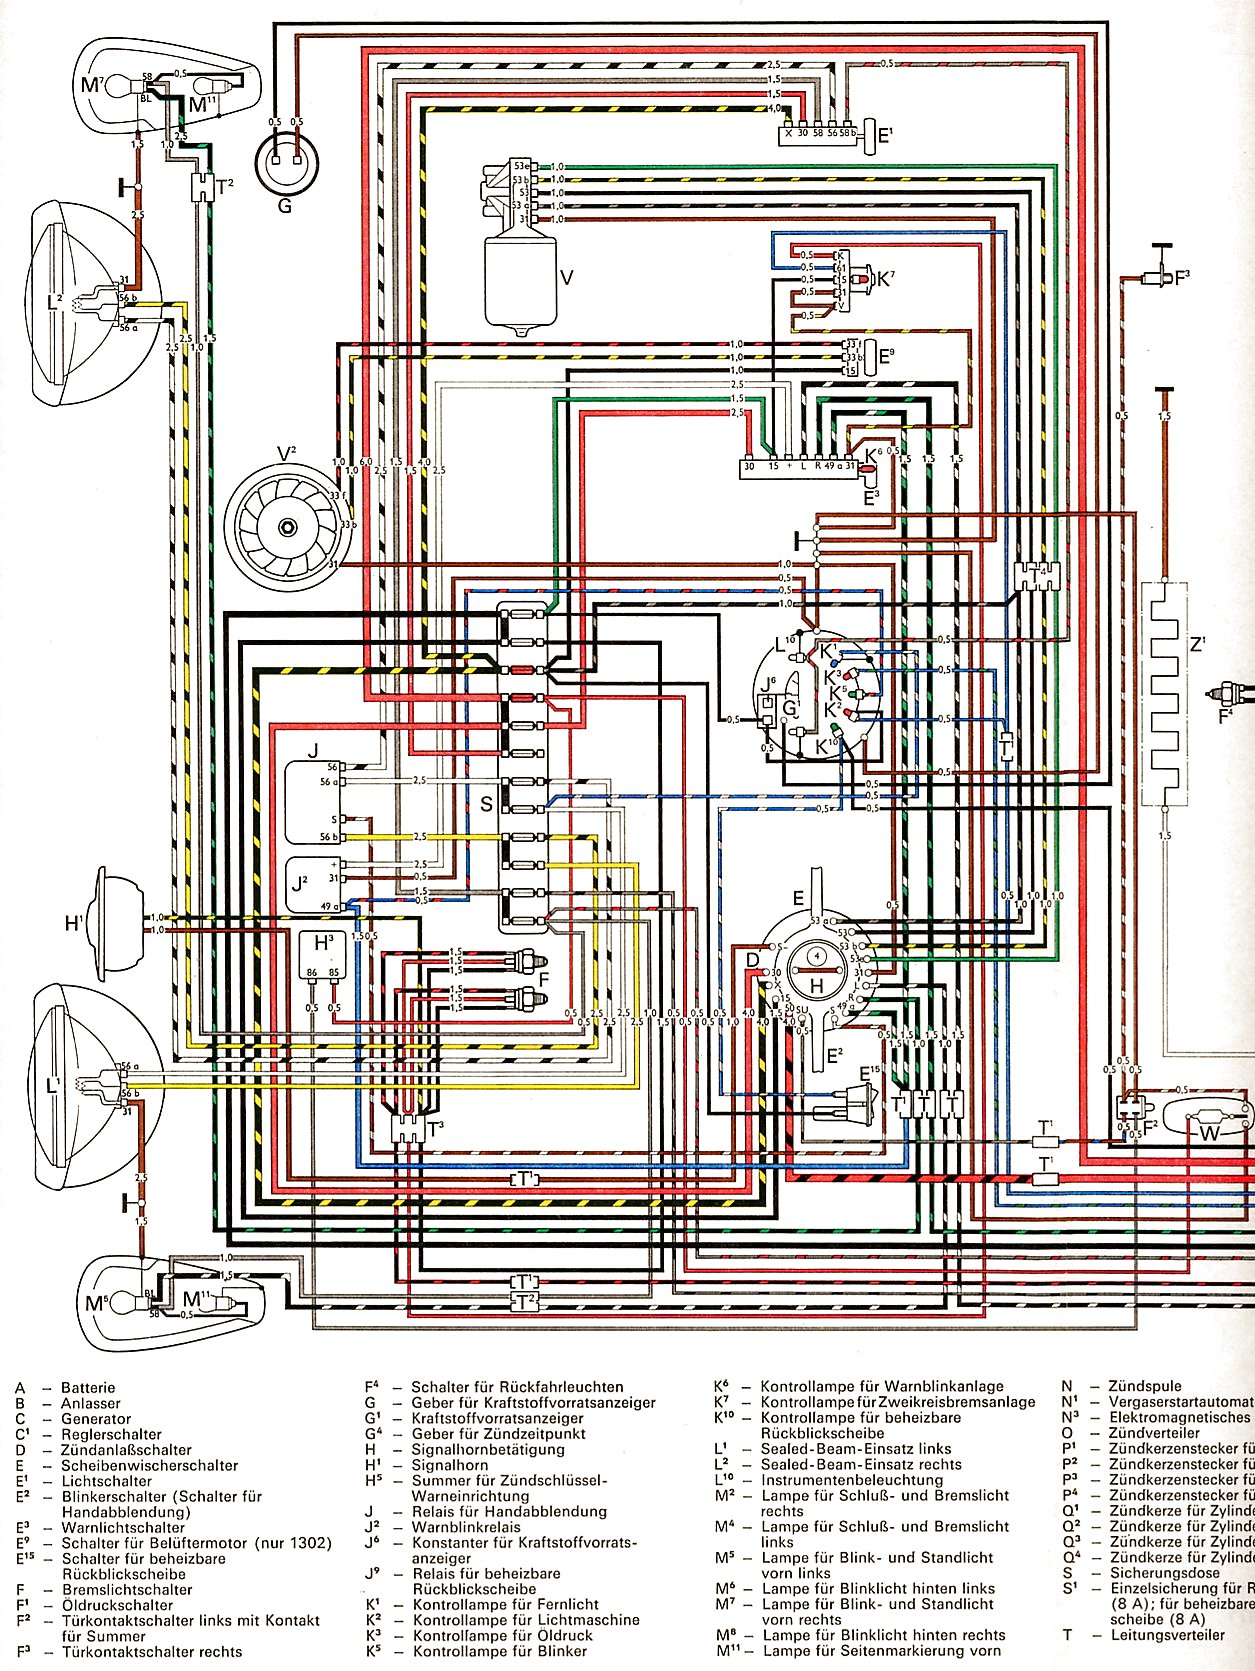 1300_and_1302_USA_from_August_1971 1 vw beetle wiring diagram 1974 1973 vw beetle wiring diagram new beetle wiring diagram at bayanpartner.co